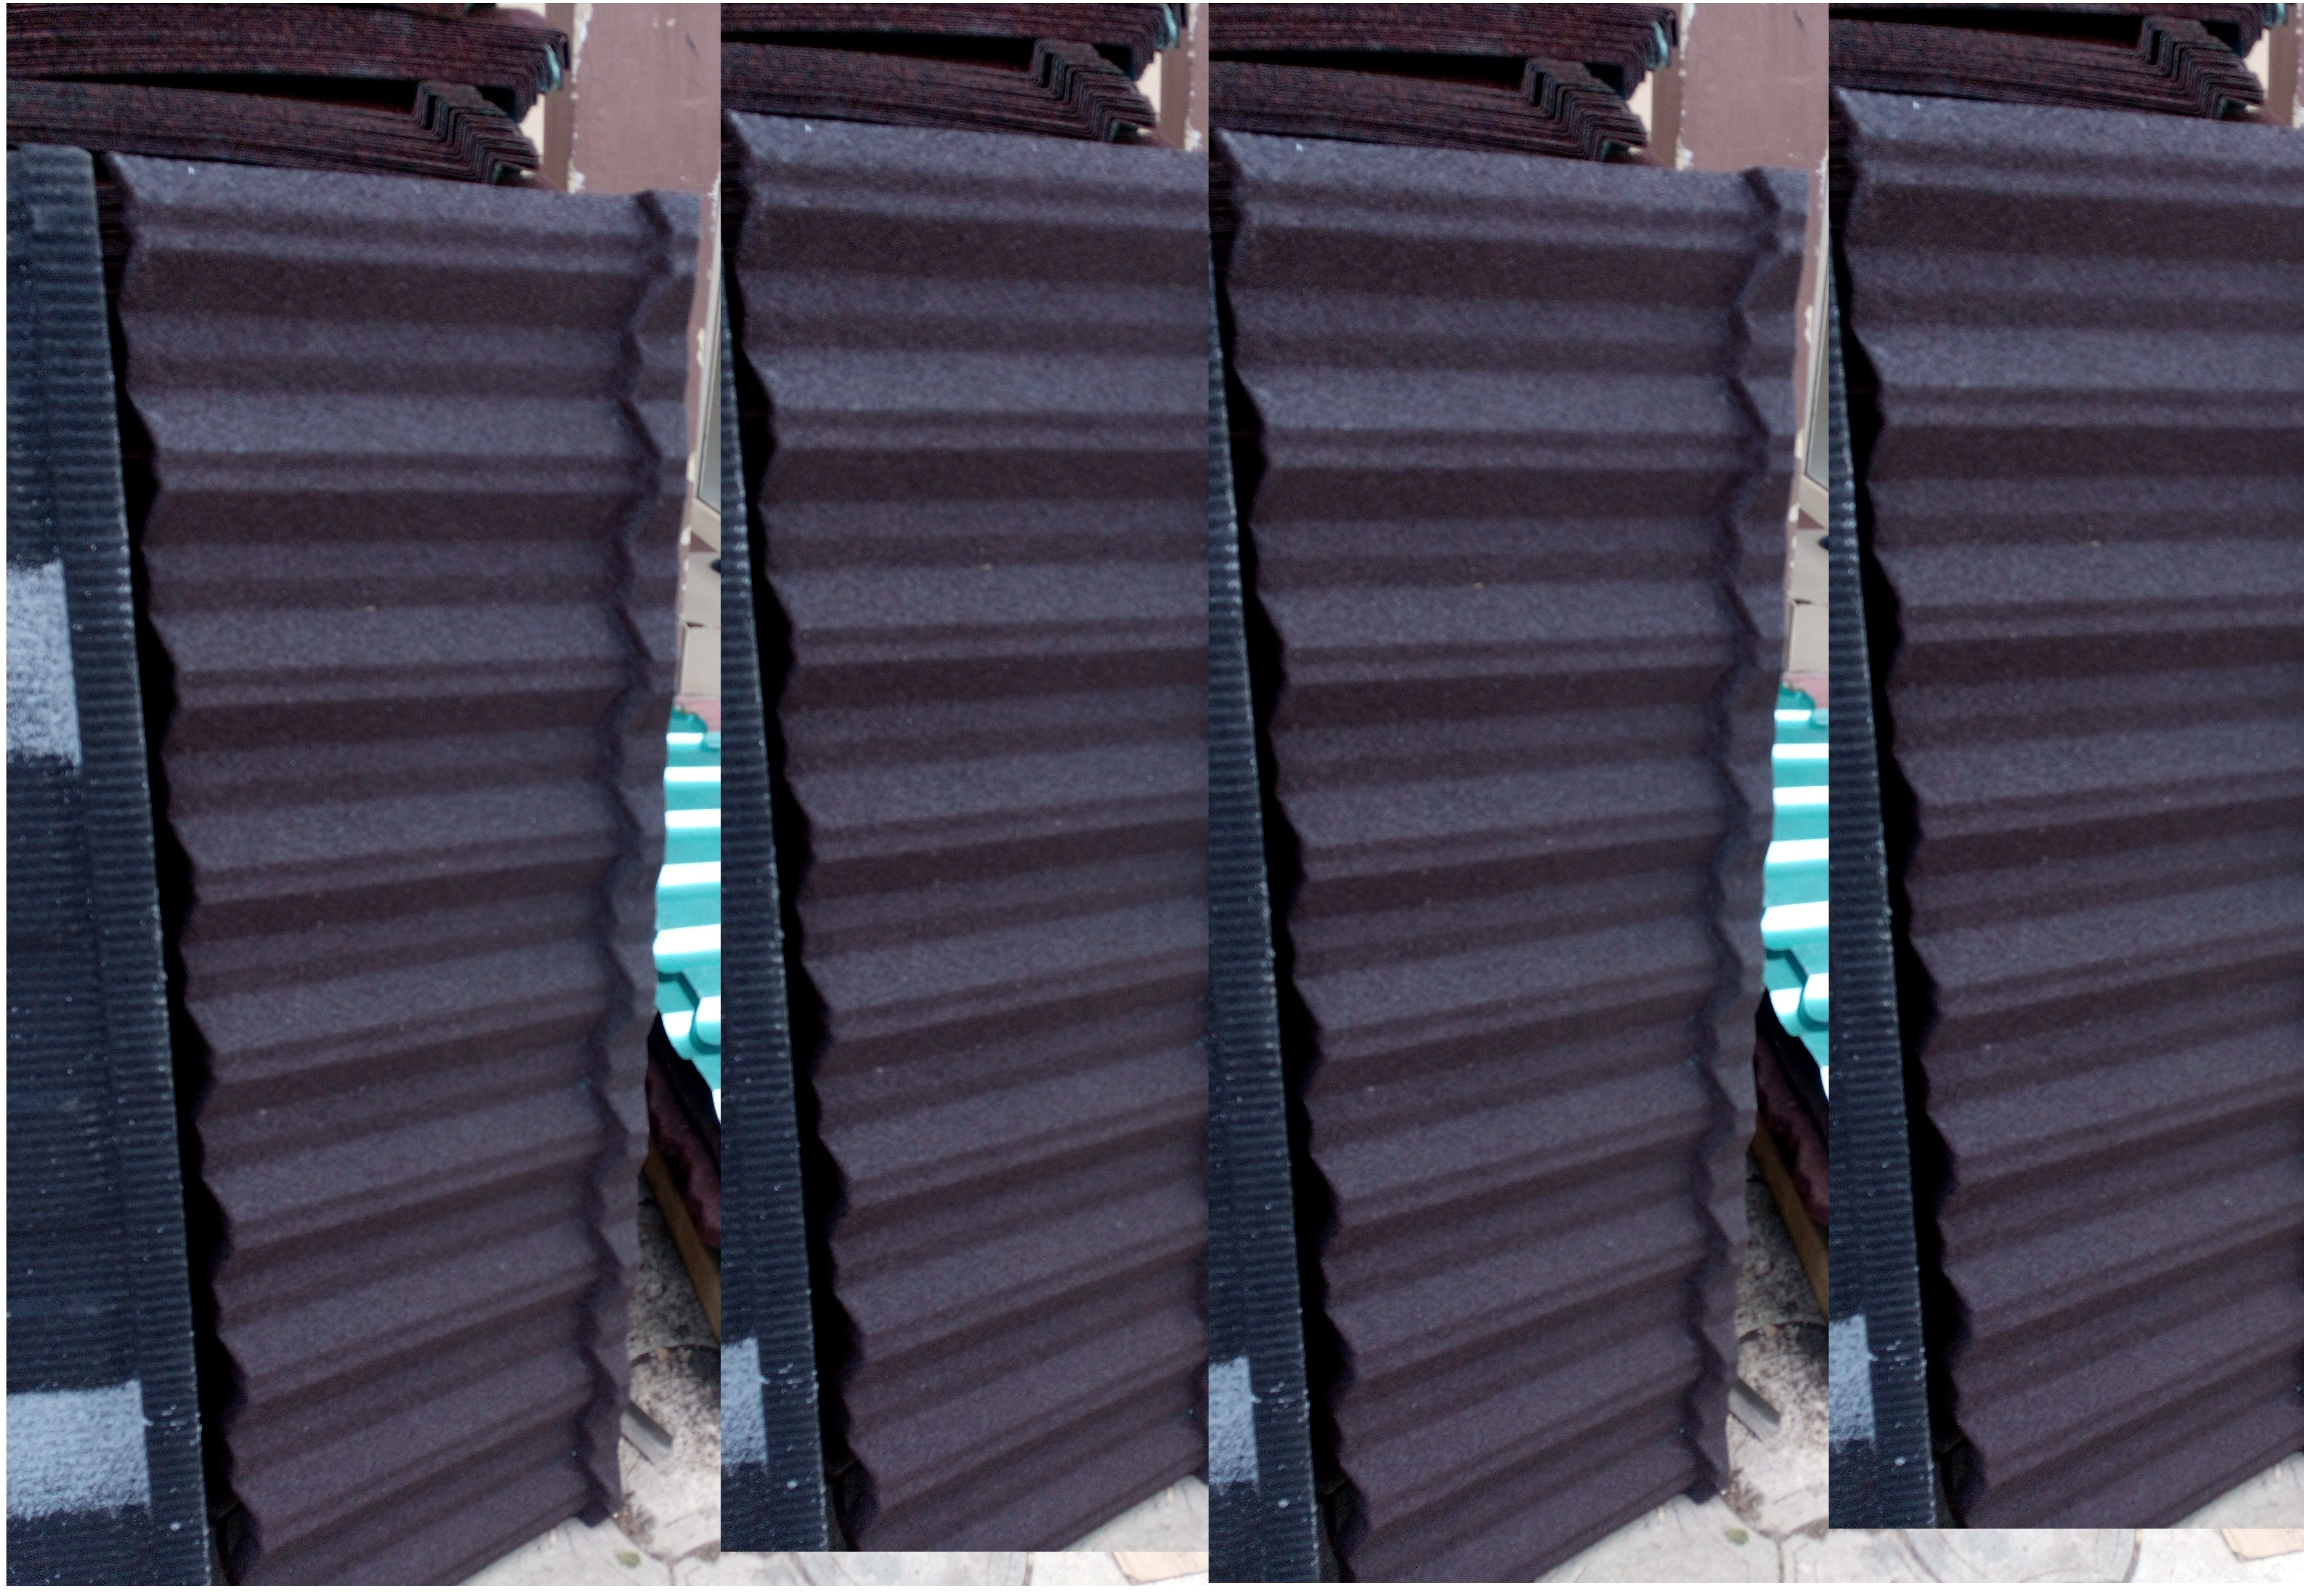 Docherich Stone Coated Roofing Sheet Is The Best 07062764235 Roofing Sheets Roofing Stone